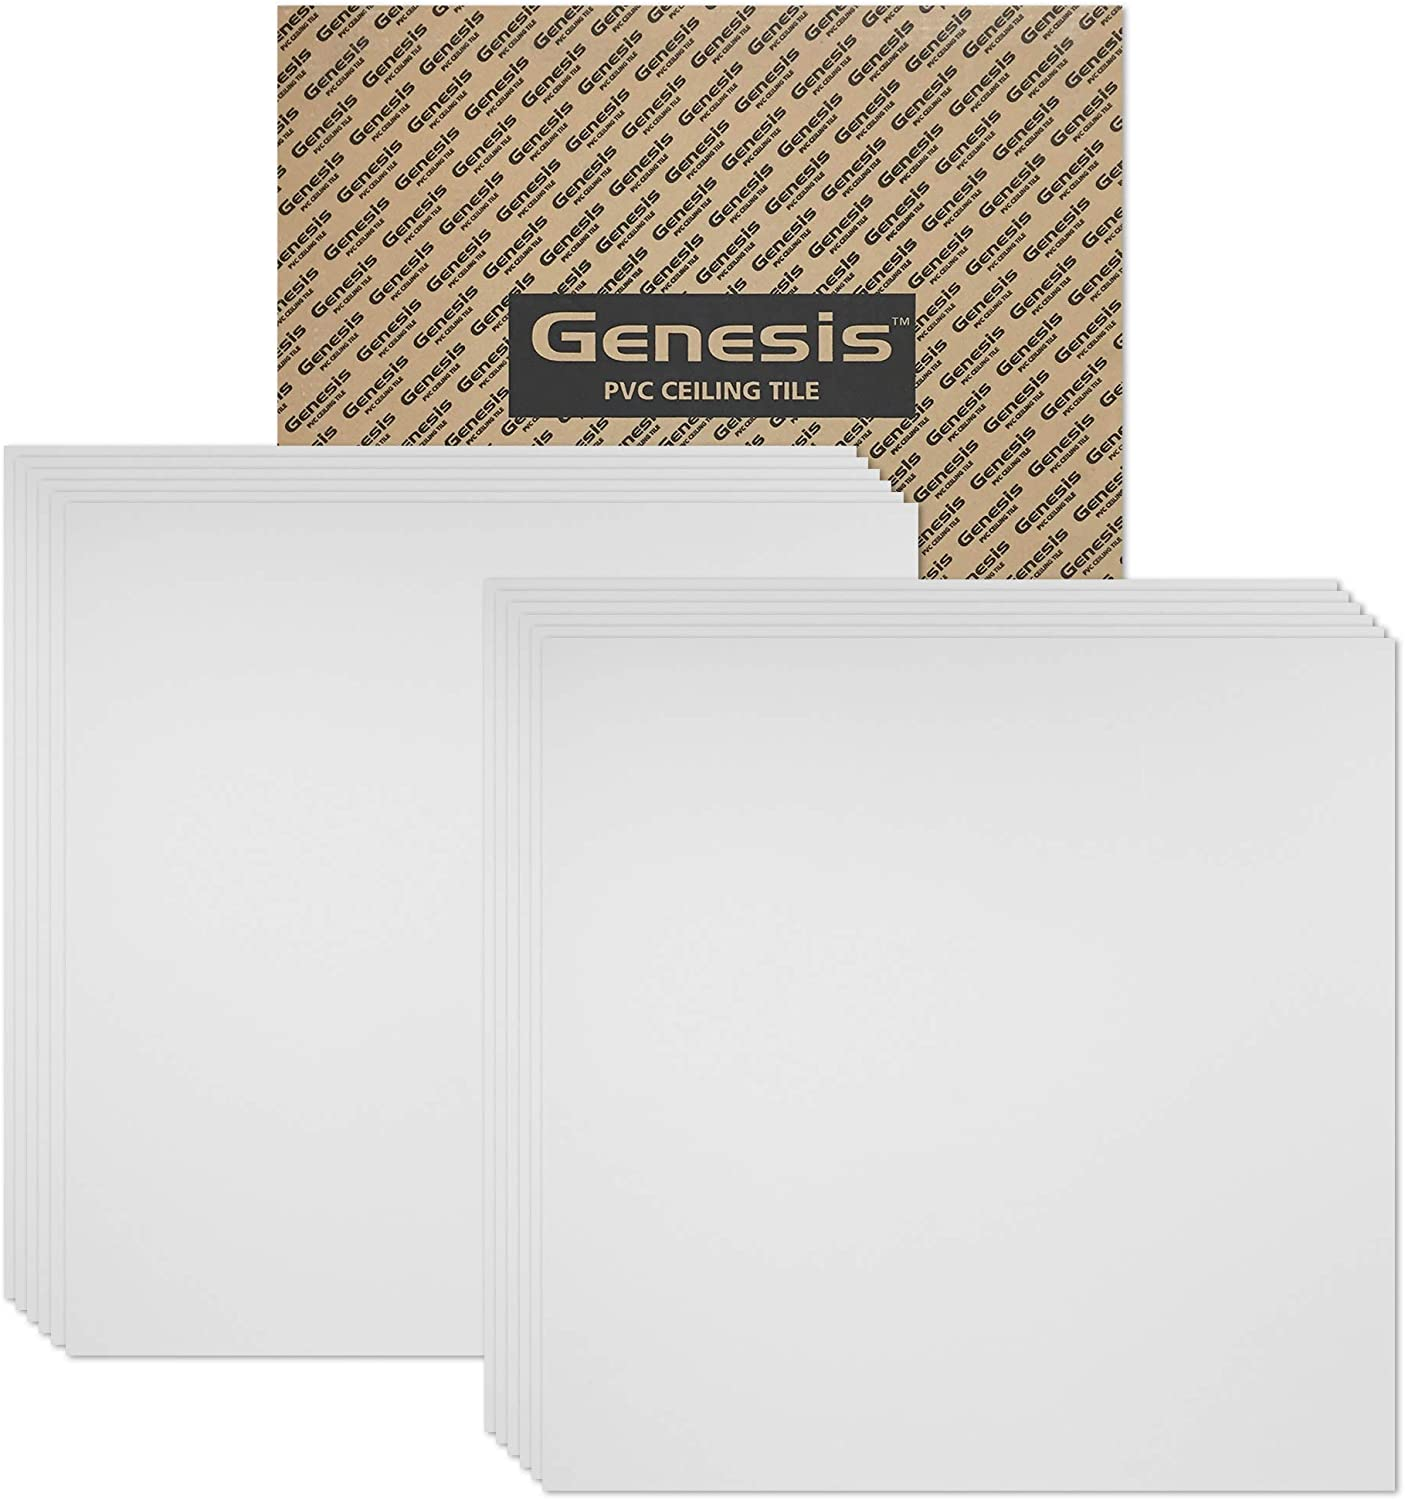 Amazon Com Genesis 2ft X 2ft Smooth Pro White Ceiling Tiles Easy Drop In Installation Waterproof Washable And Fire Rated High Grade Pvc To Prevent Breakage Package Of 12 Tiles Home